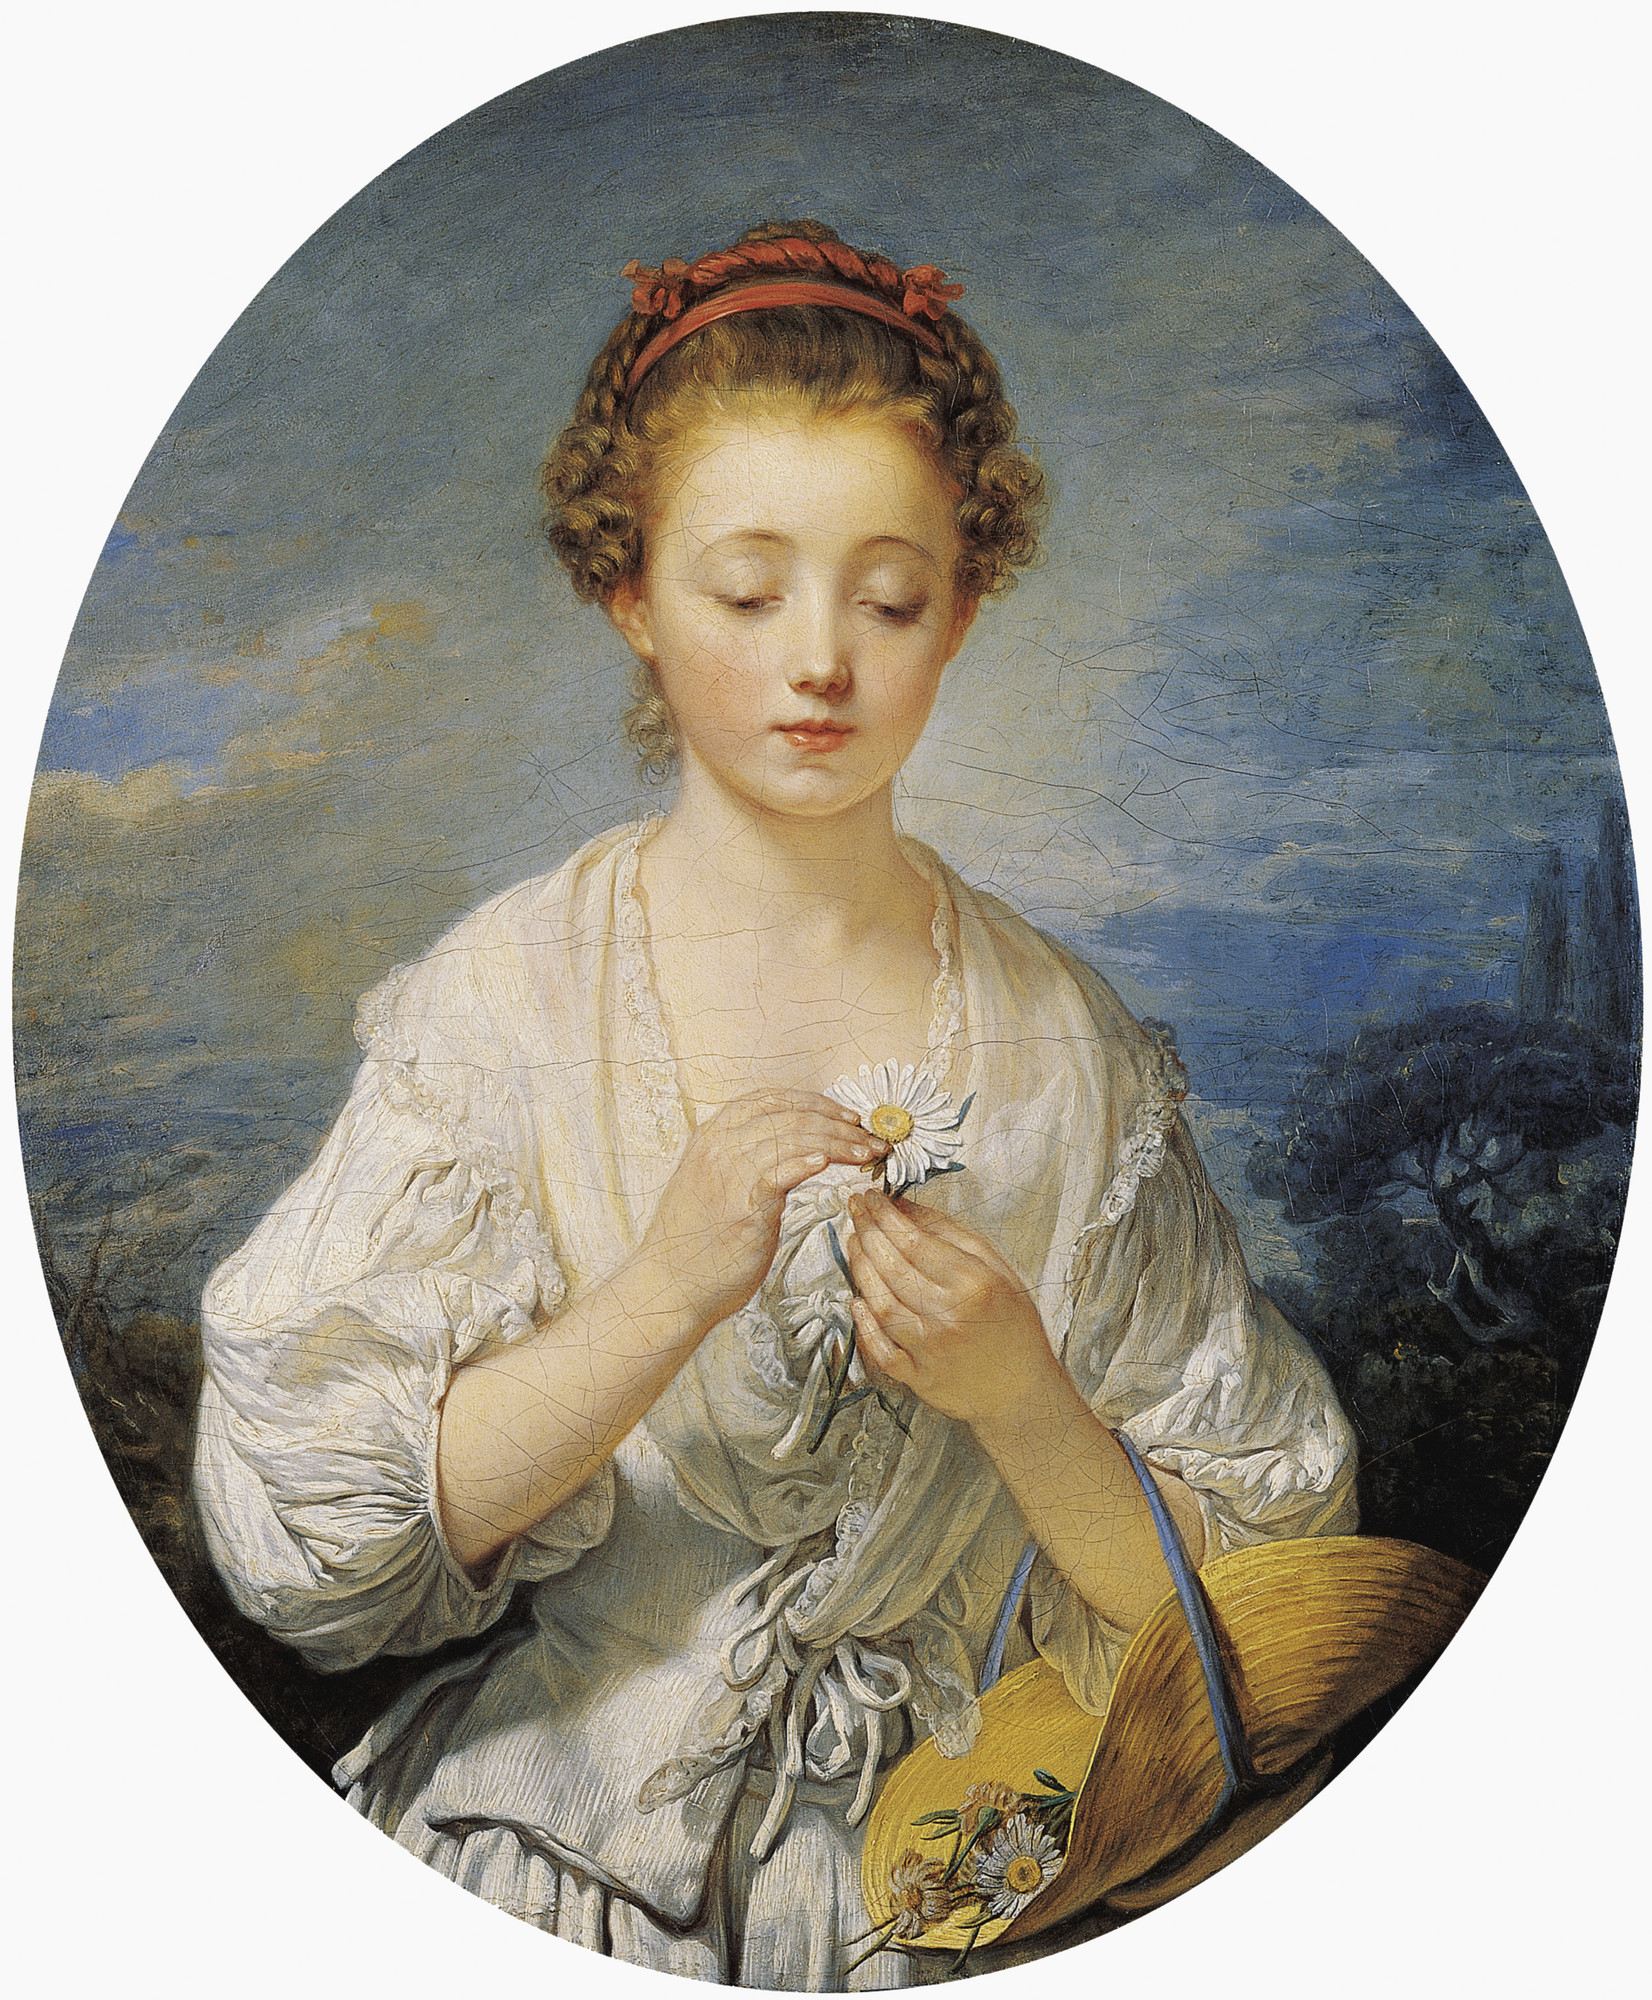 Greuze A La simplicite 1759 Fort Worth, Texas, Kimbell Art Museum